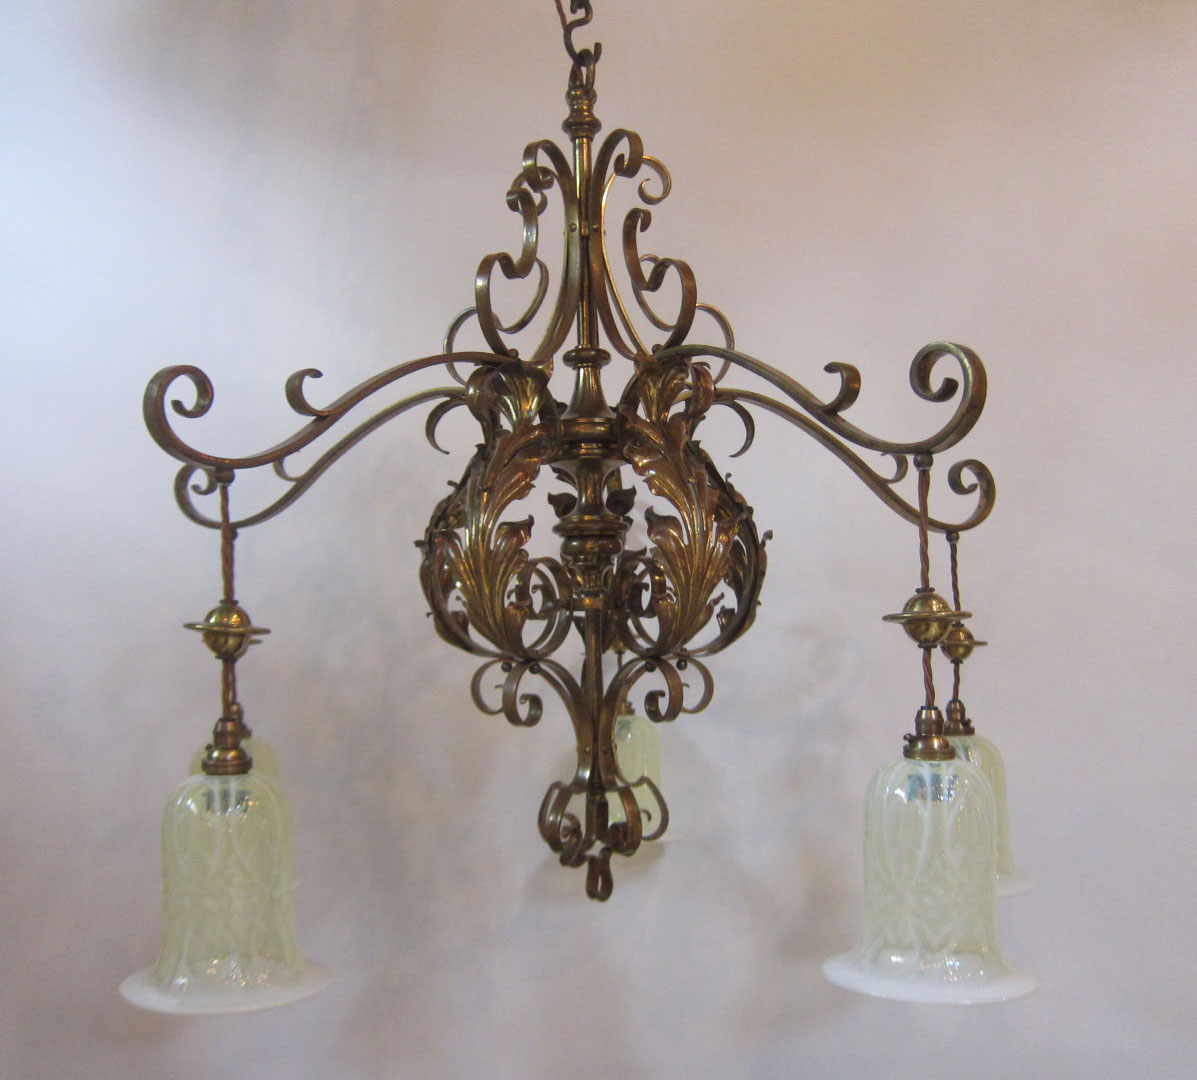 Large Five Arm Ceiling Light Exeter Antique Lighting Company